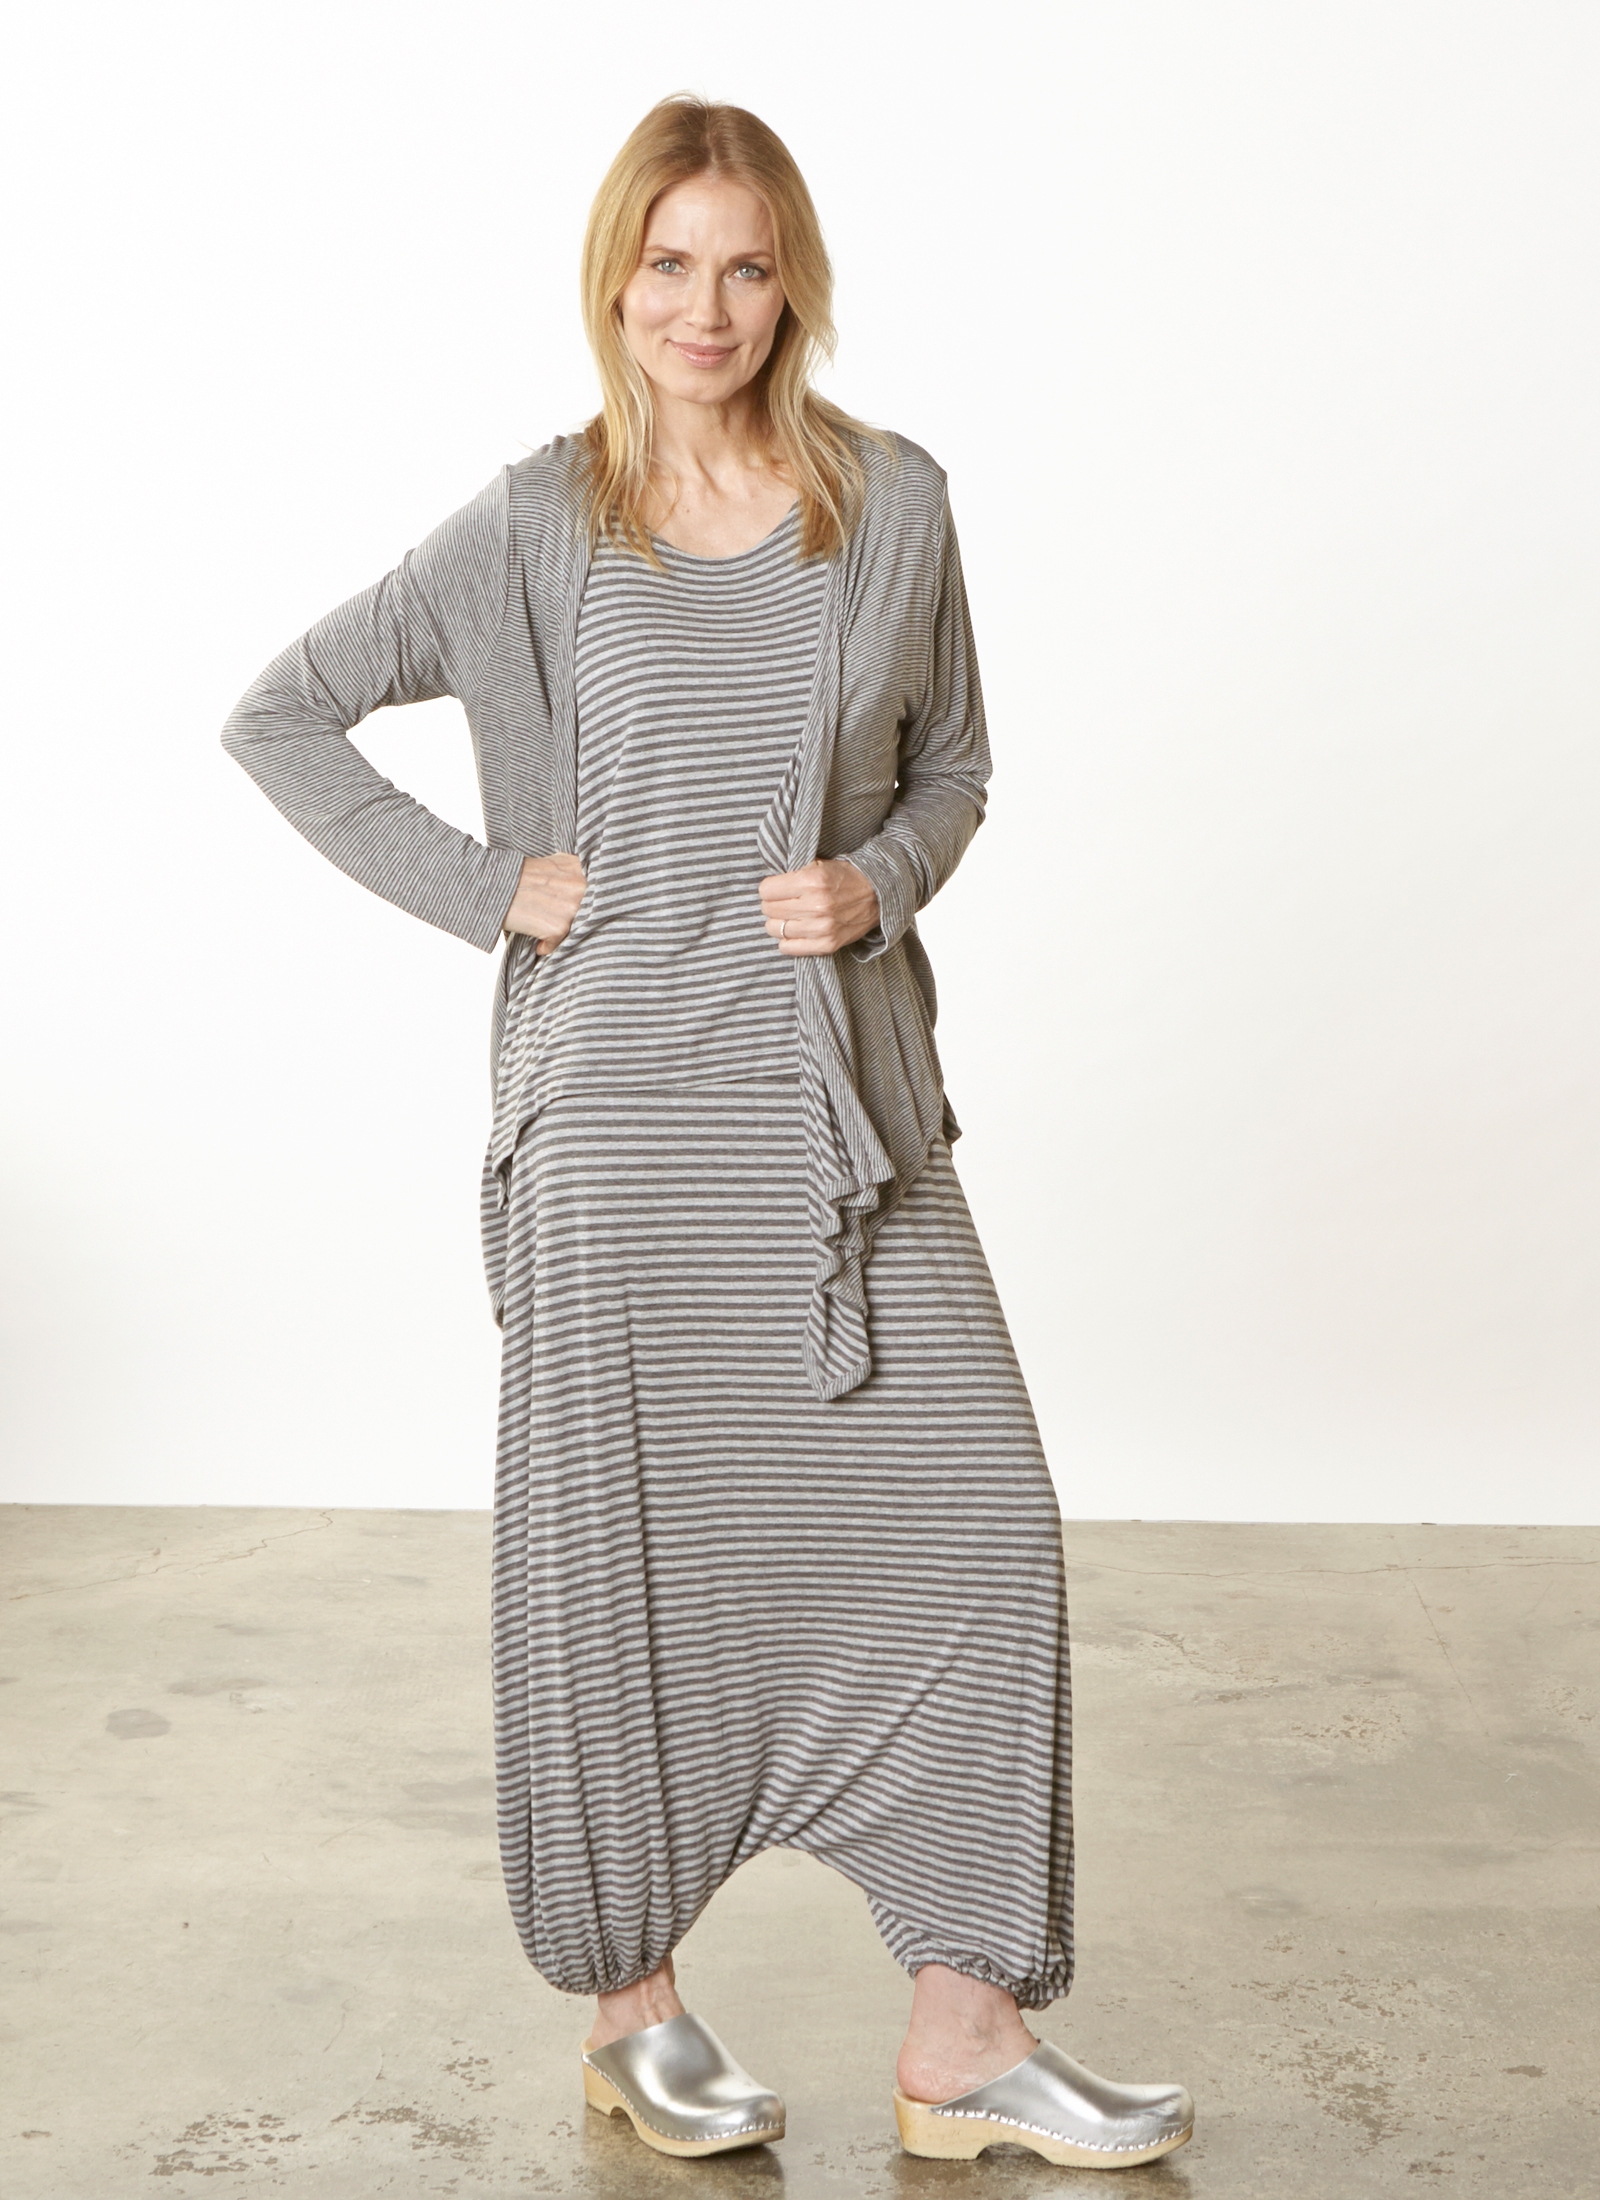 Alta Cardigan, Renee Tank, Gaucho Pant in Grey Double Stripe Jersey